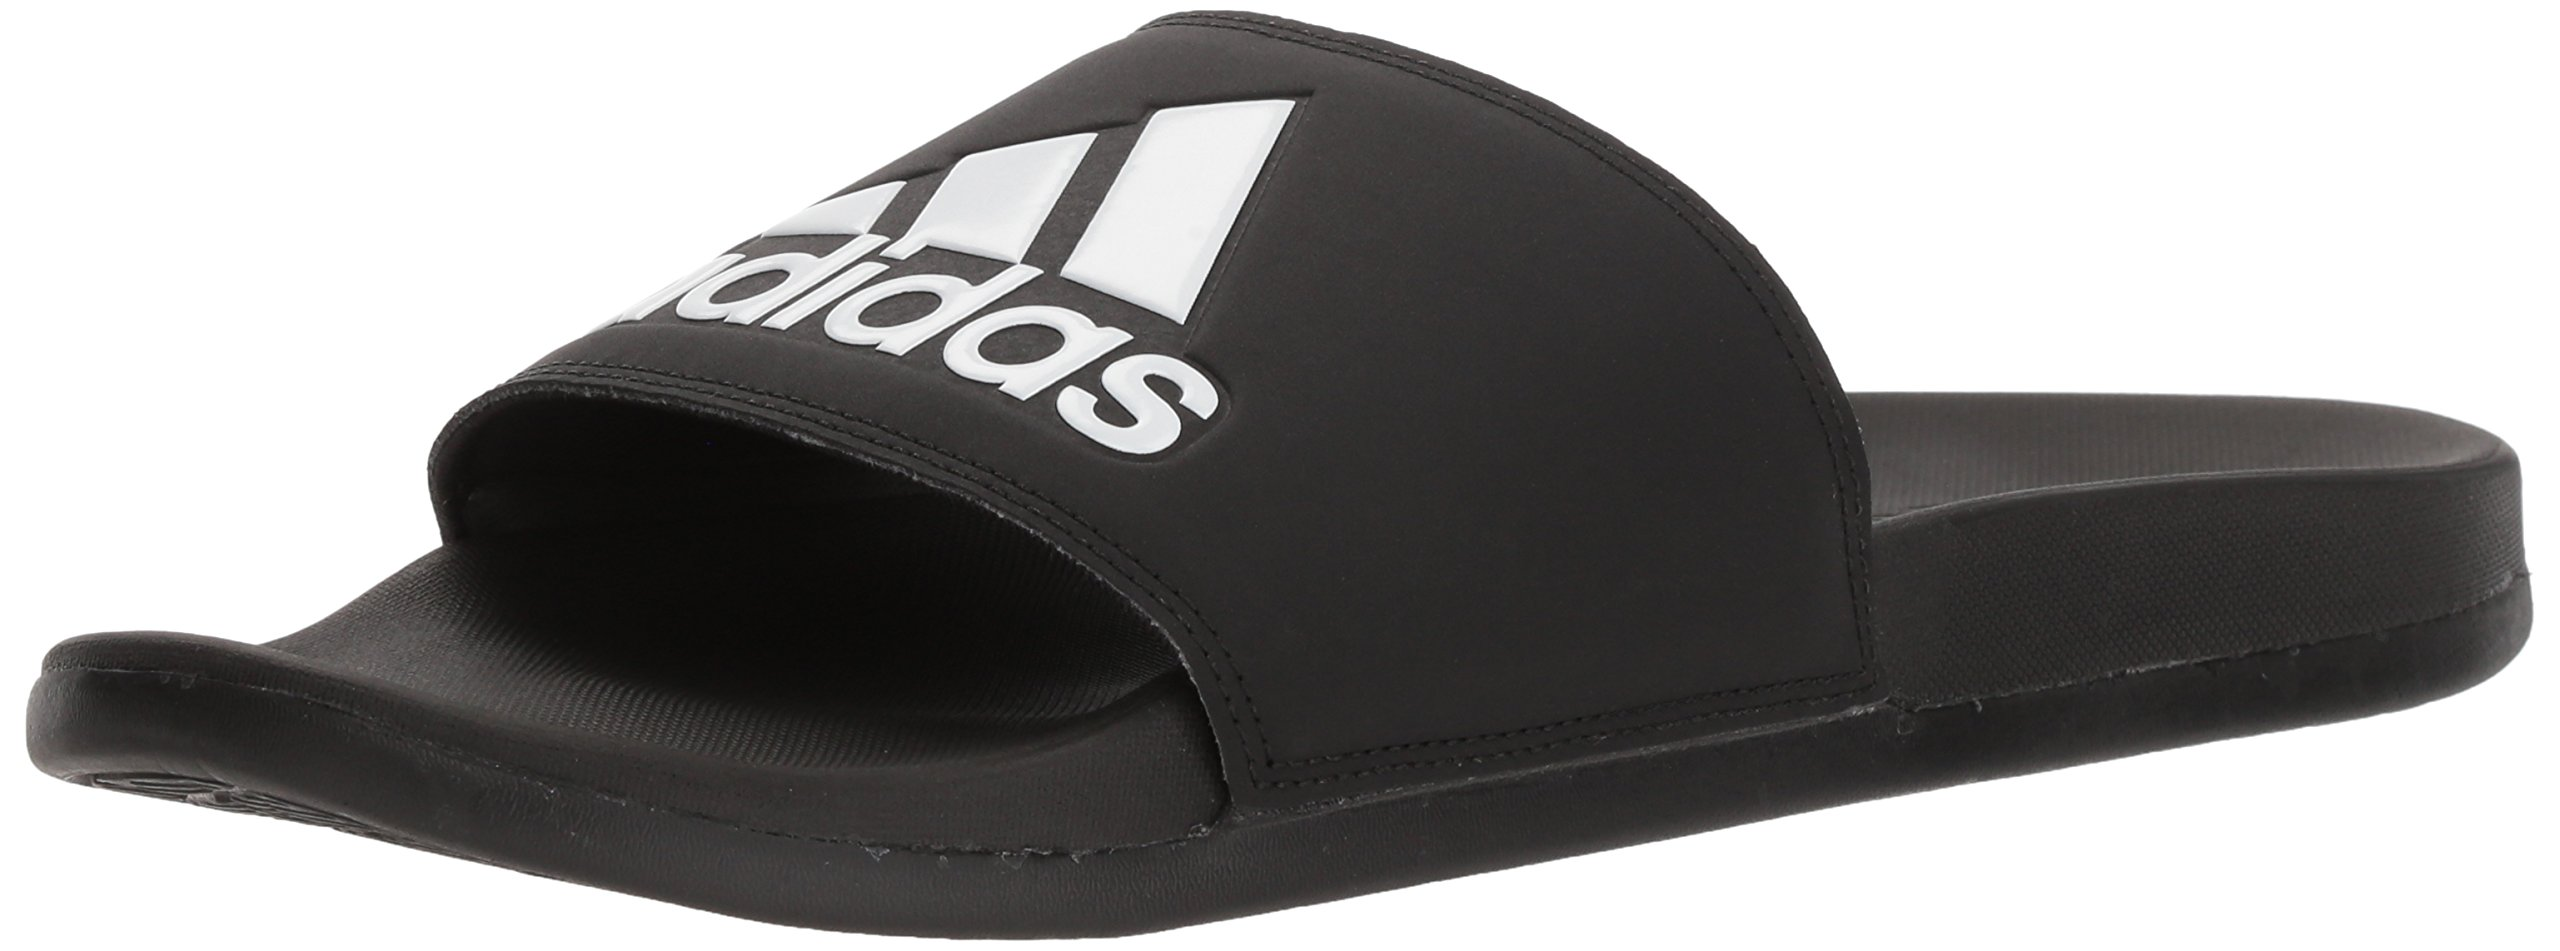 adidas Men's Adilette Comfort Slide Sandal, Black/Black/White, 12 M US by adidas